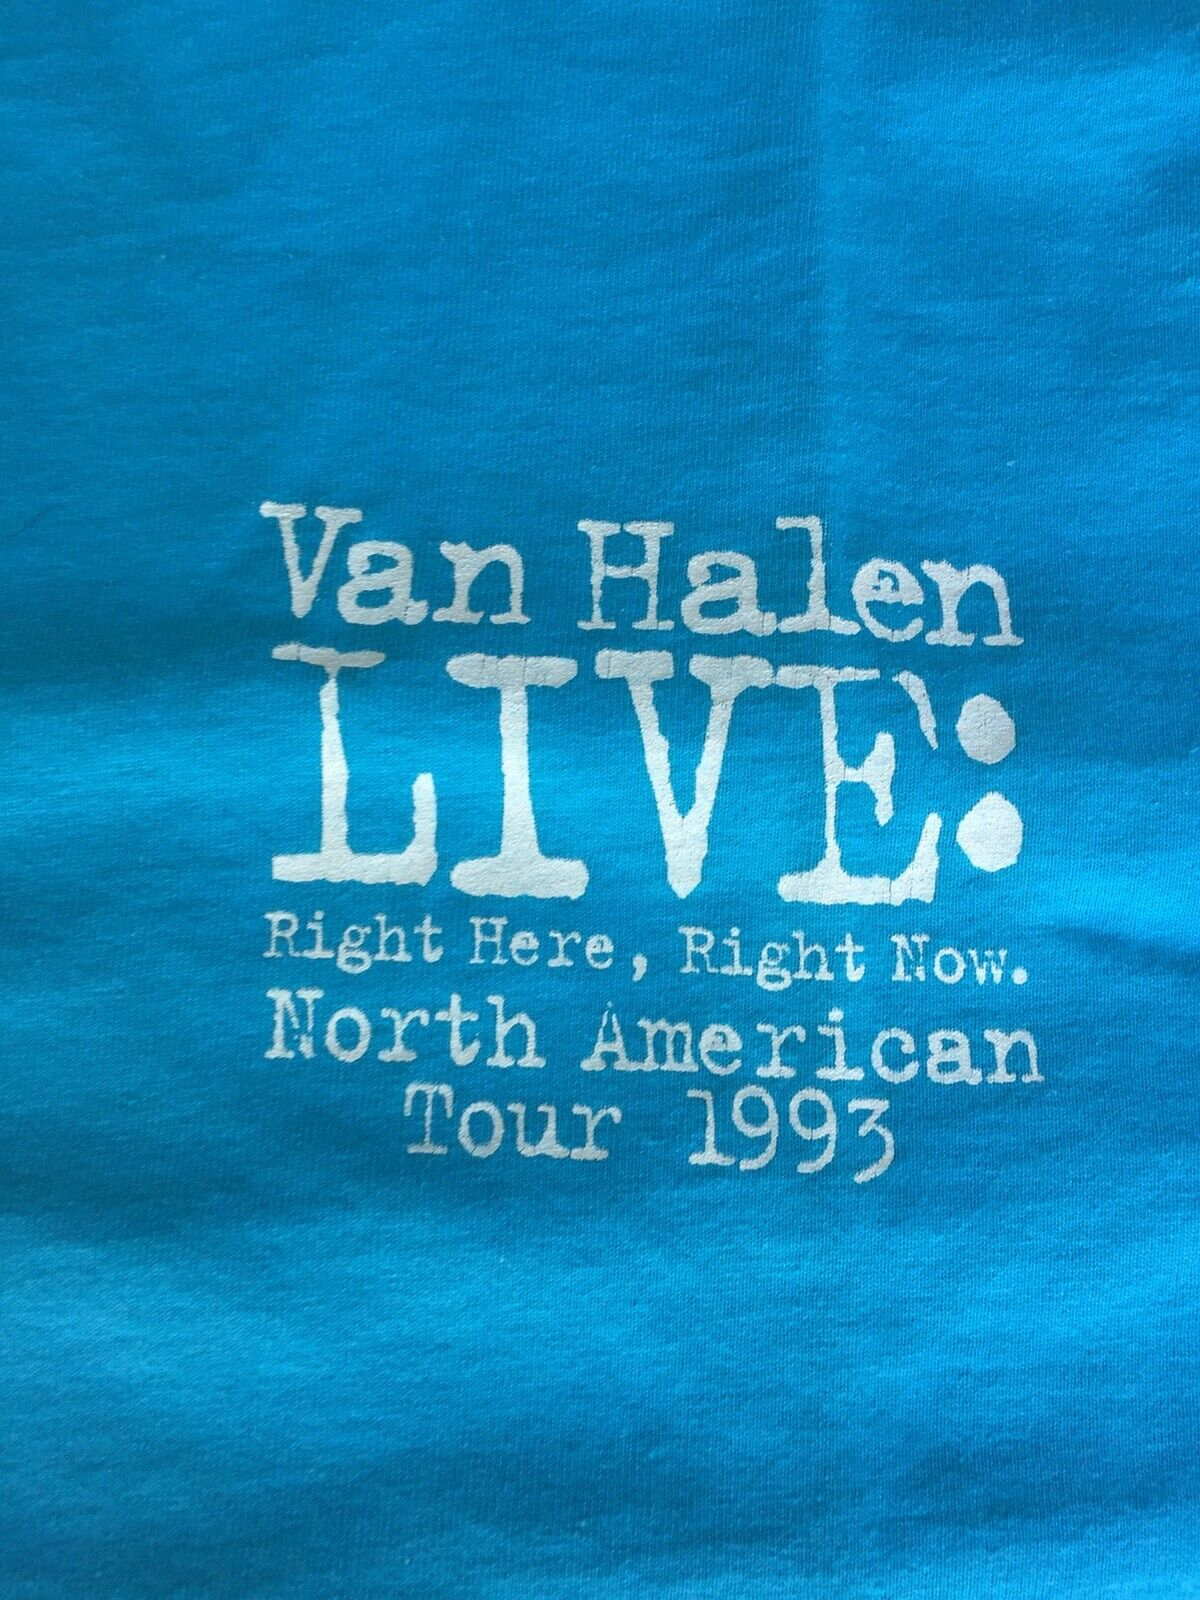 VAN HALEN Live Right Here Right Now 1993 Super RARE Vintage XL BEST T Shirt